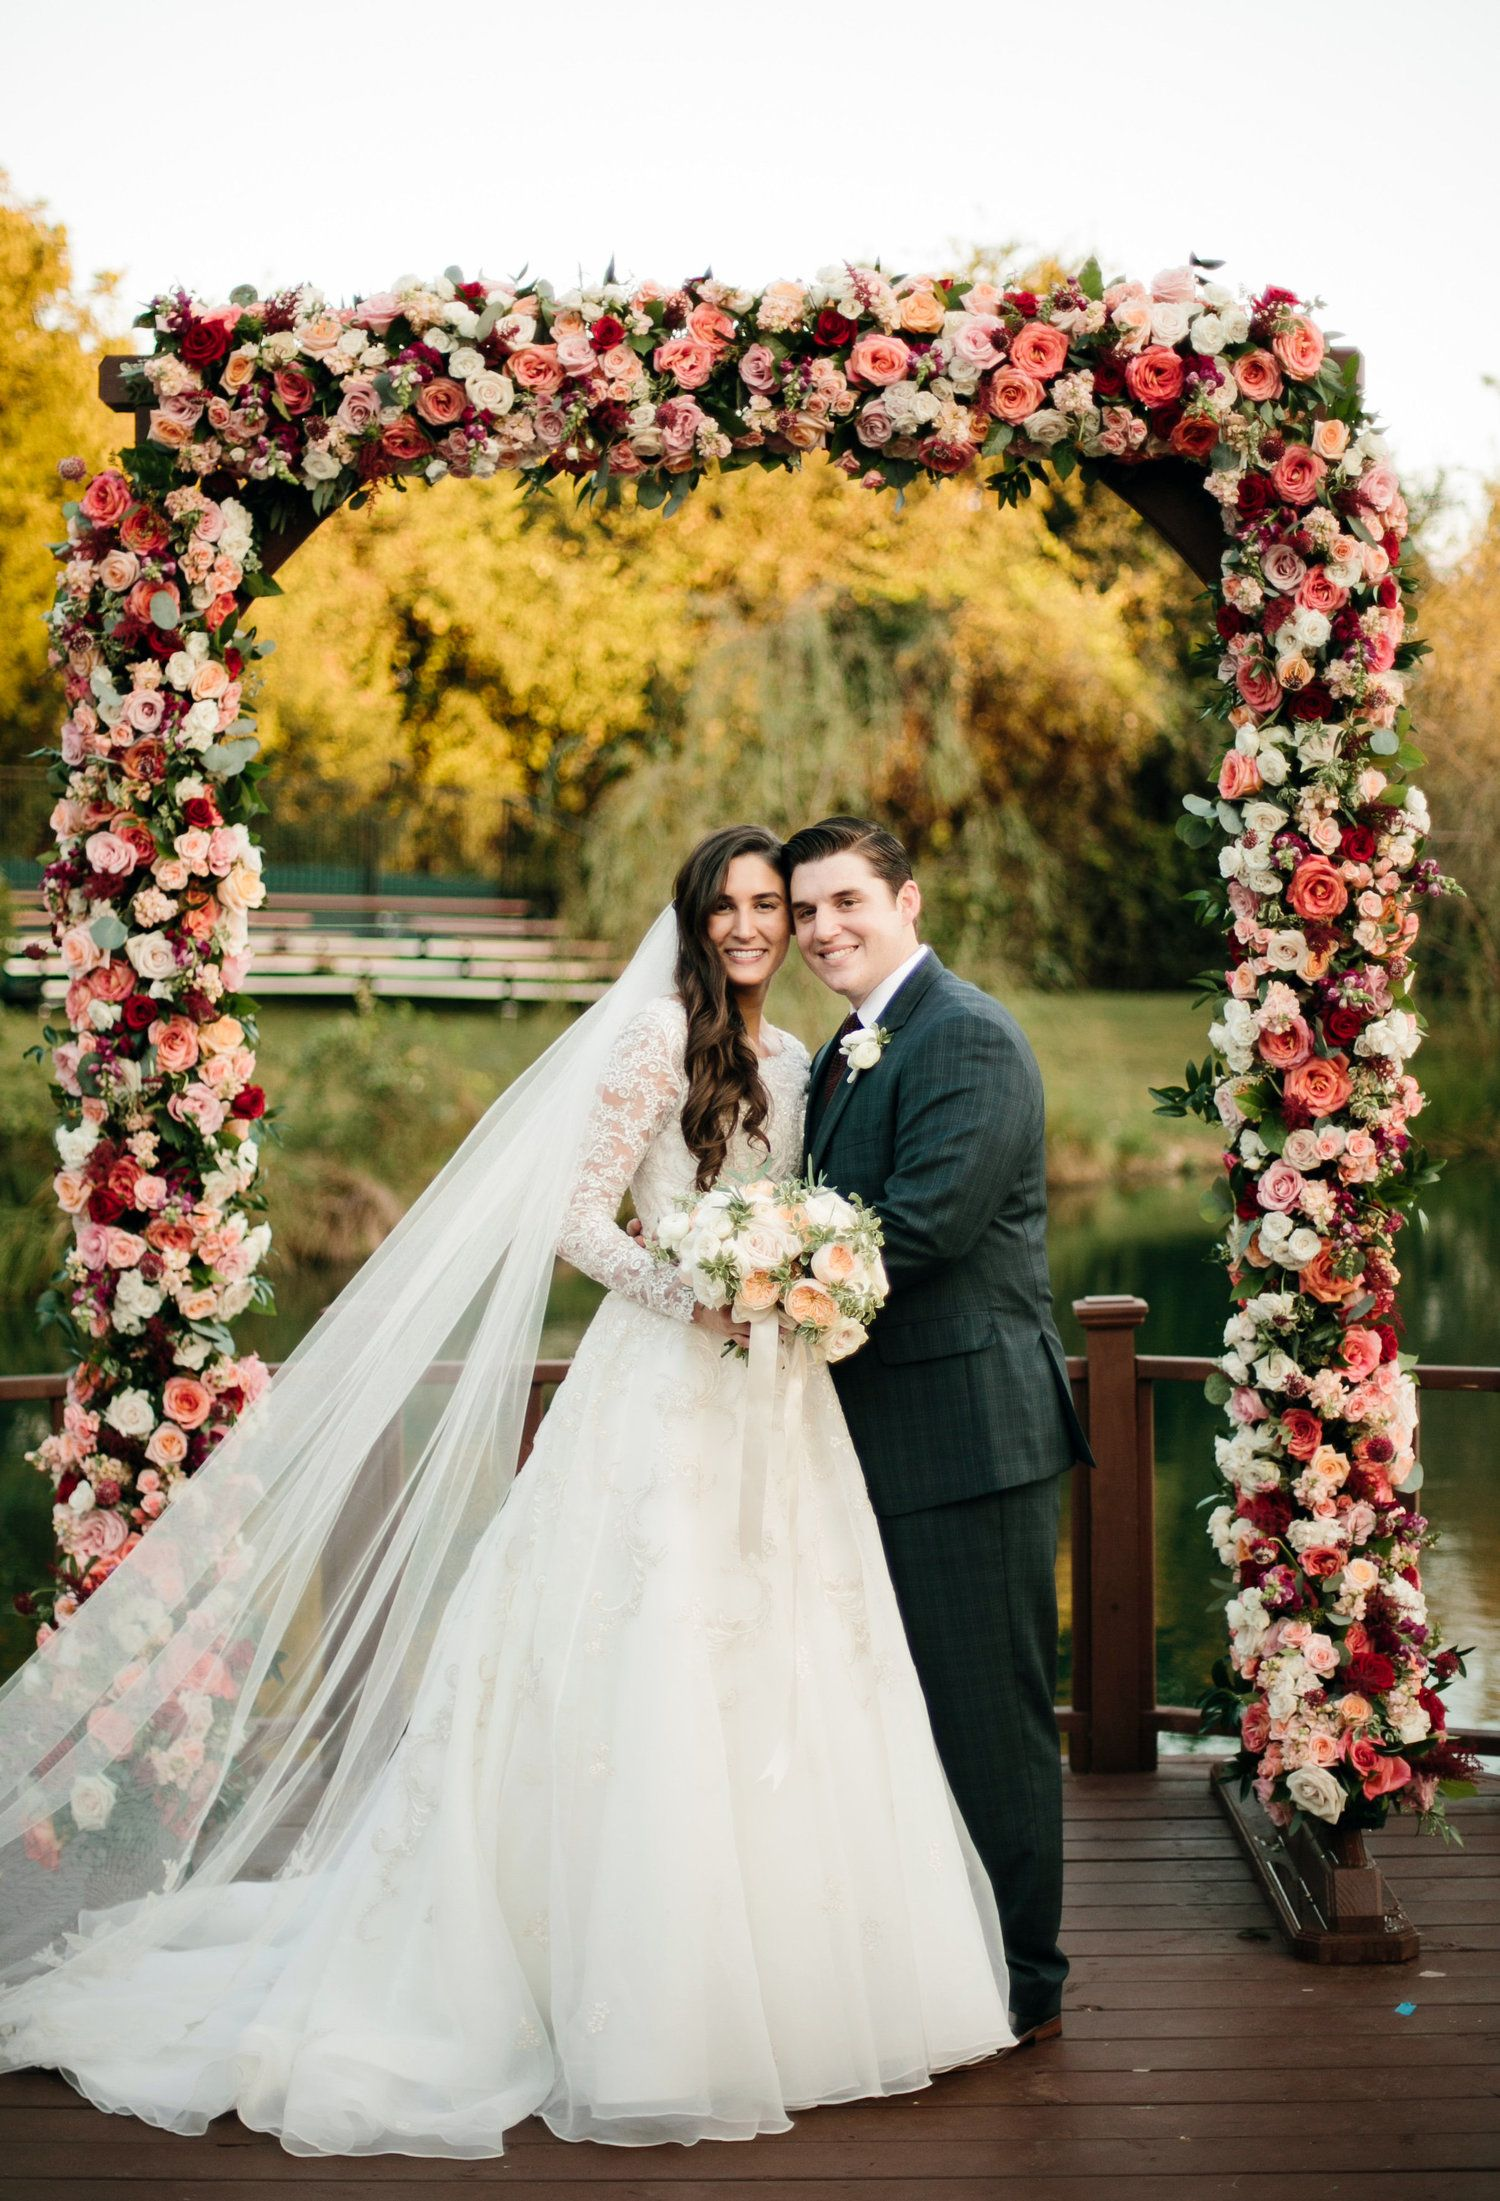 Romantic Floral Fall wedding. Floral Arch by Lush Couture